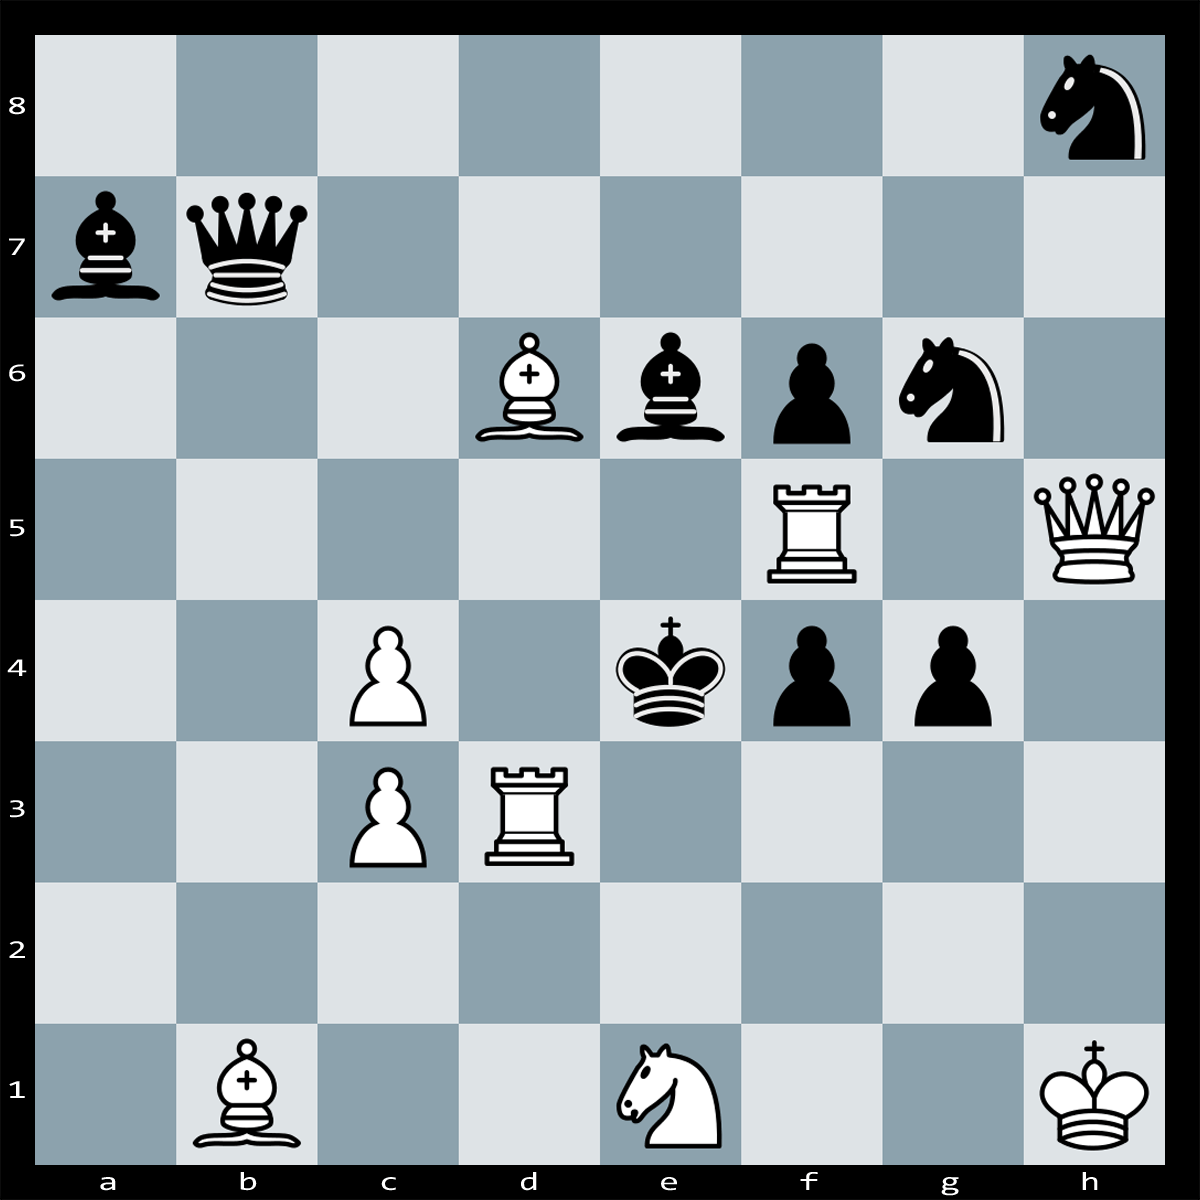 Mate in Two moves, White to play | Puzzle #110